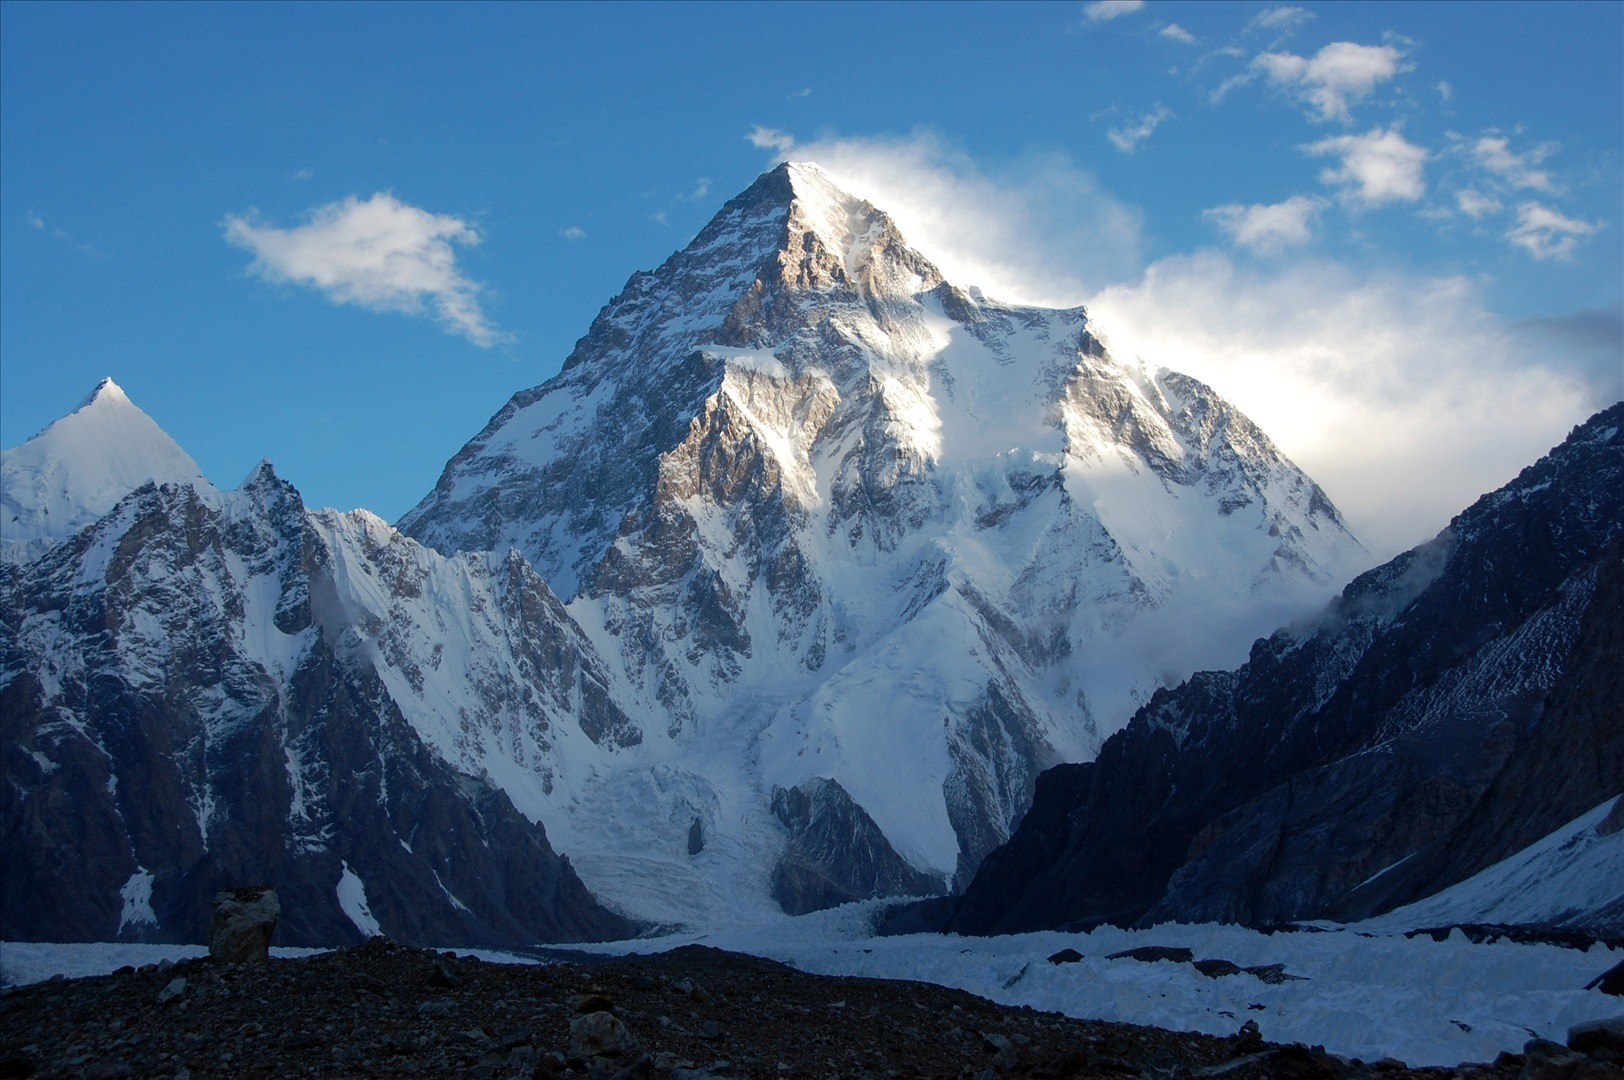 K2, the highest landmark of Pakistan